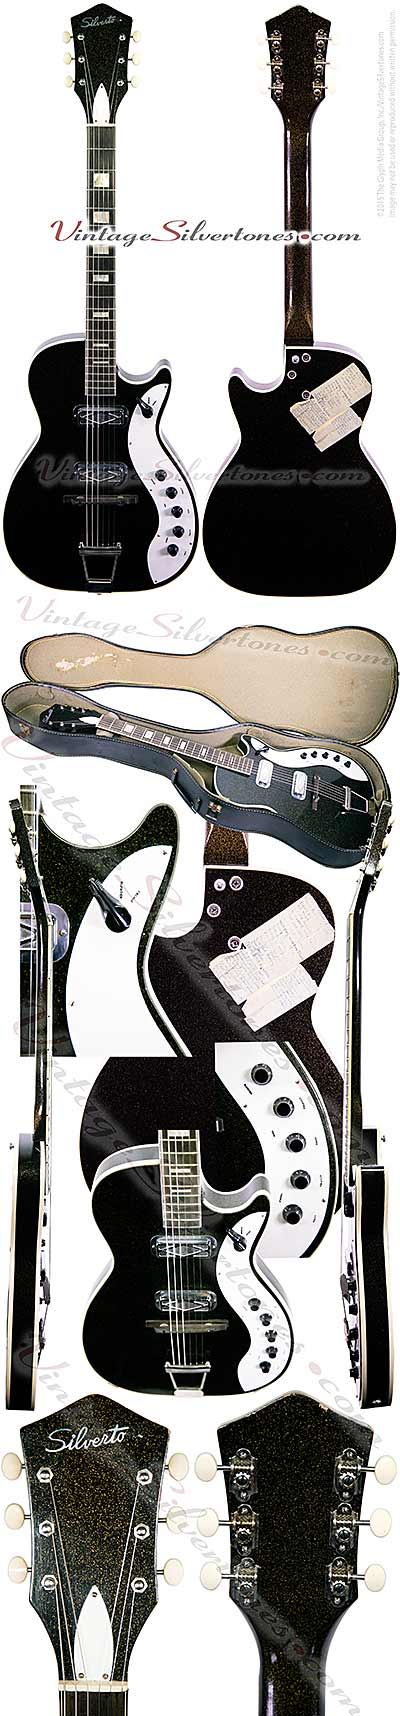 Silvertone 1423 - Harmony Jupiter 2 DeArmond pickups, black sparkle finish, made in Chicago circa 1962